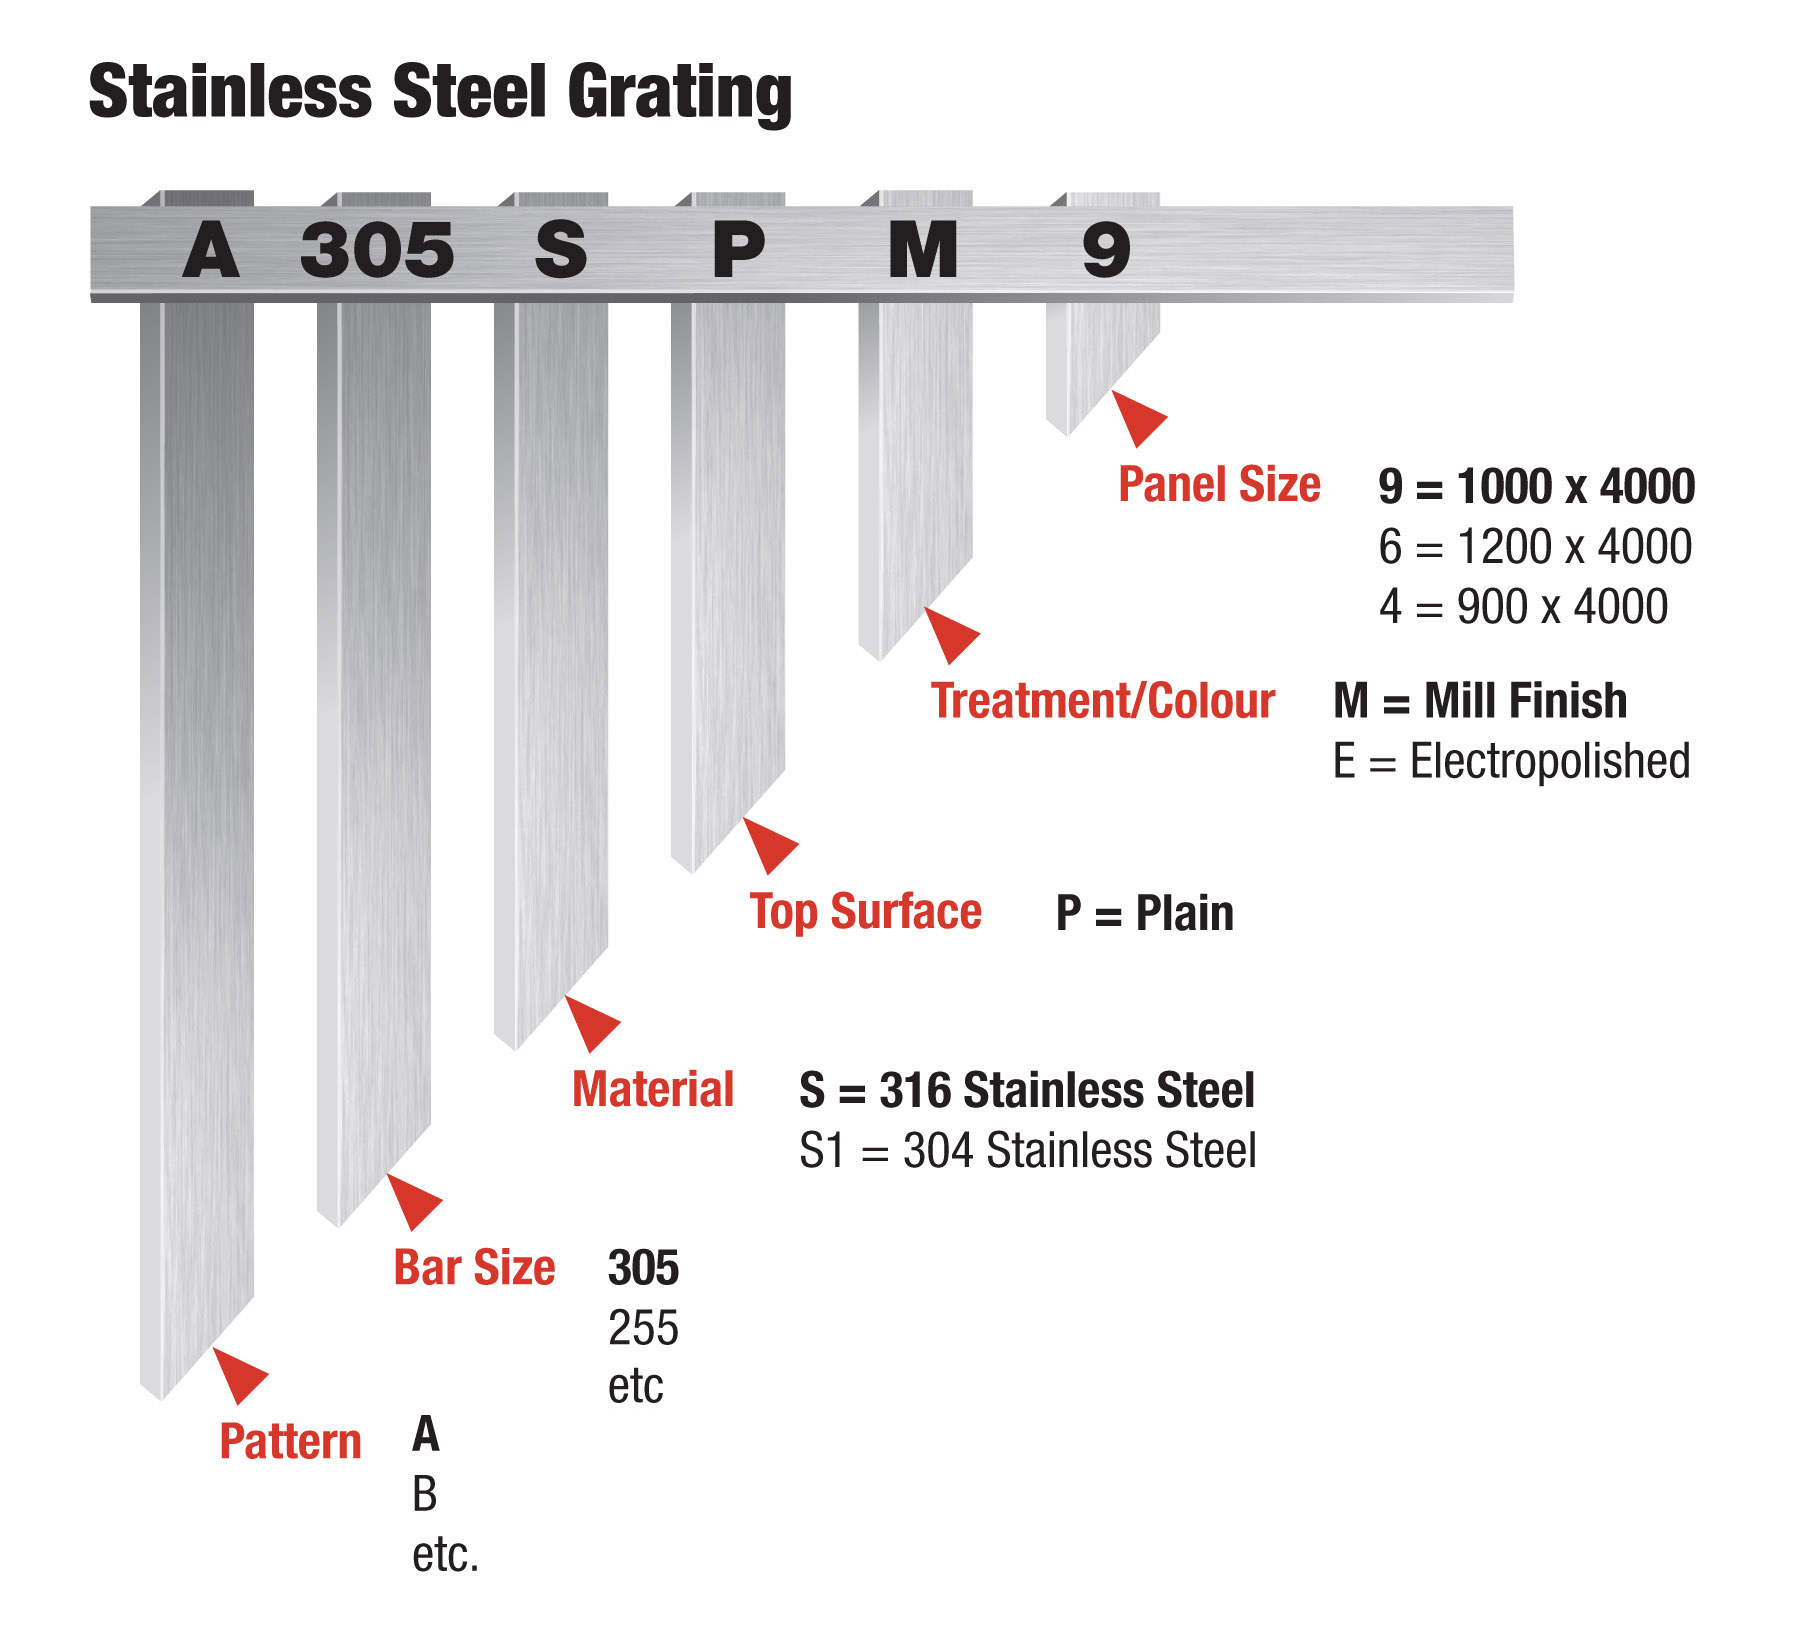 stainless steel grating part numbers